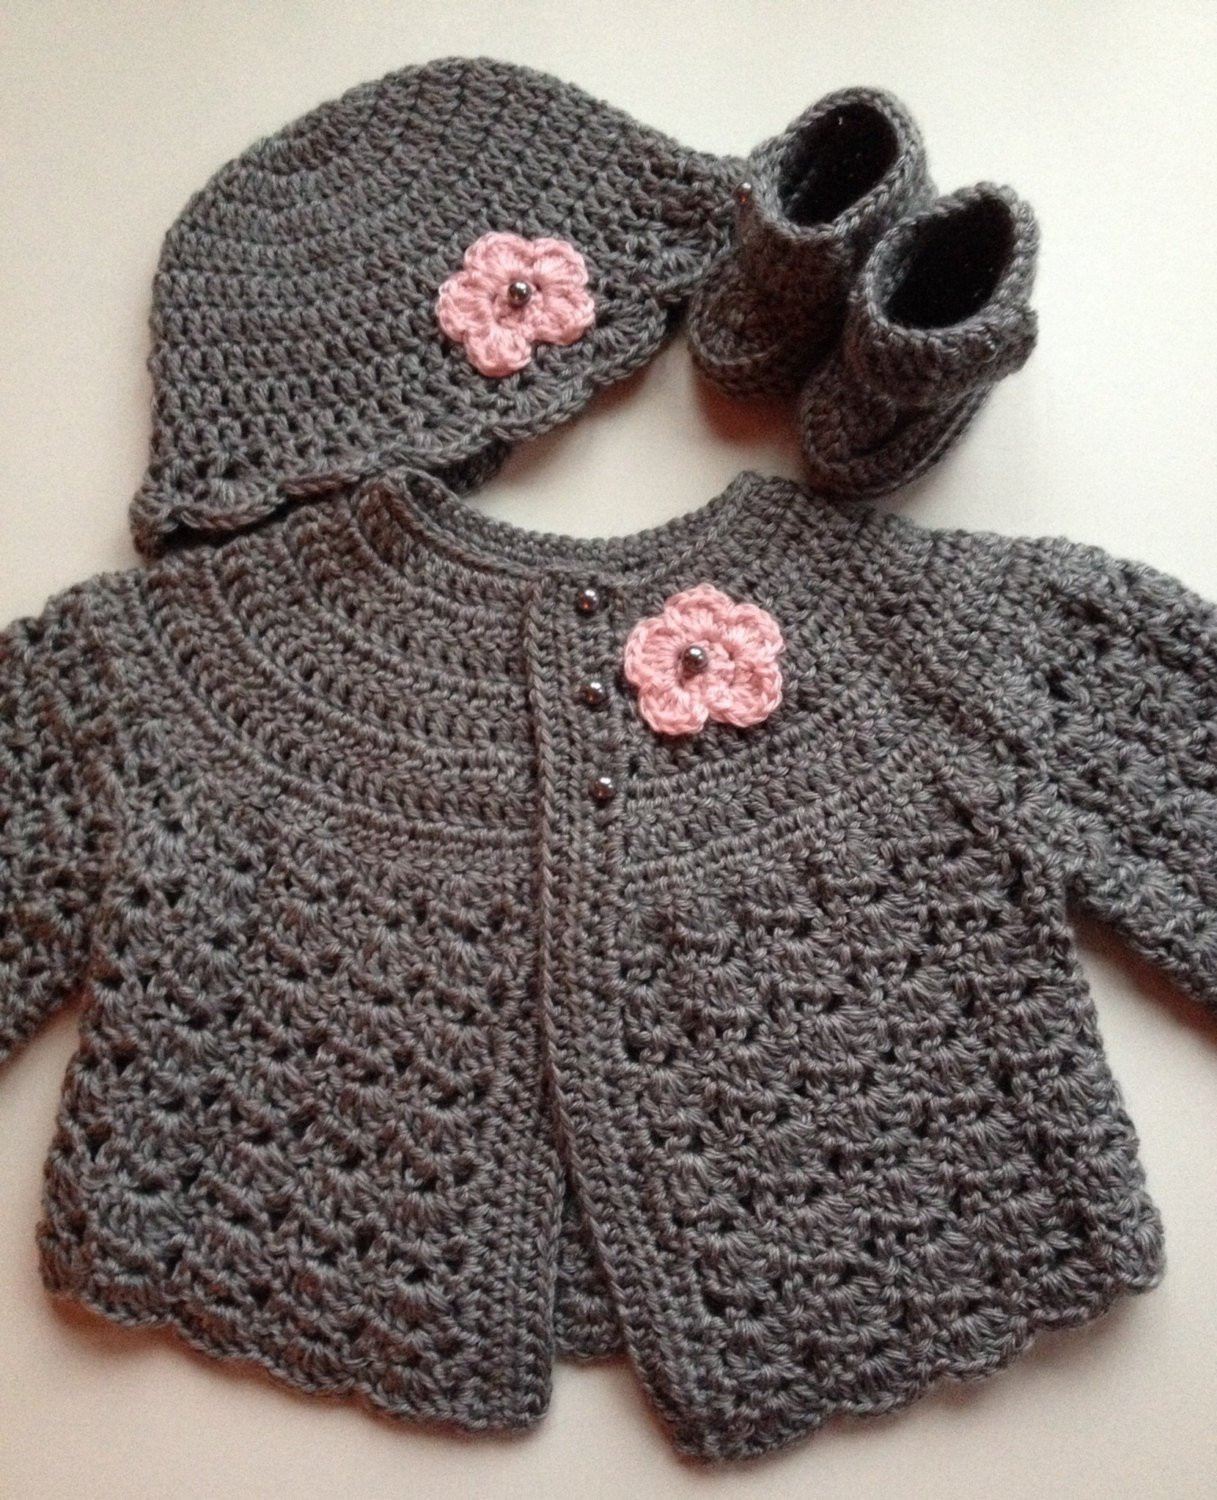 Crochet Sweaters Unique Crochet Baby Sweater Hat Booties Set Heather Grey 3 6 Mo Of Fresh 50 Images Crochet Sweaters